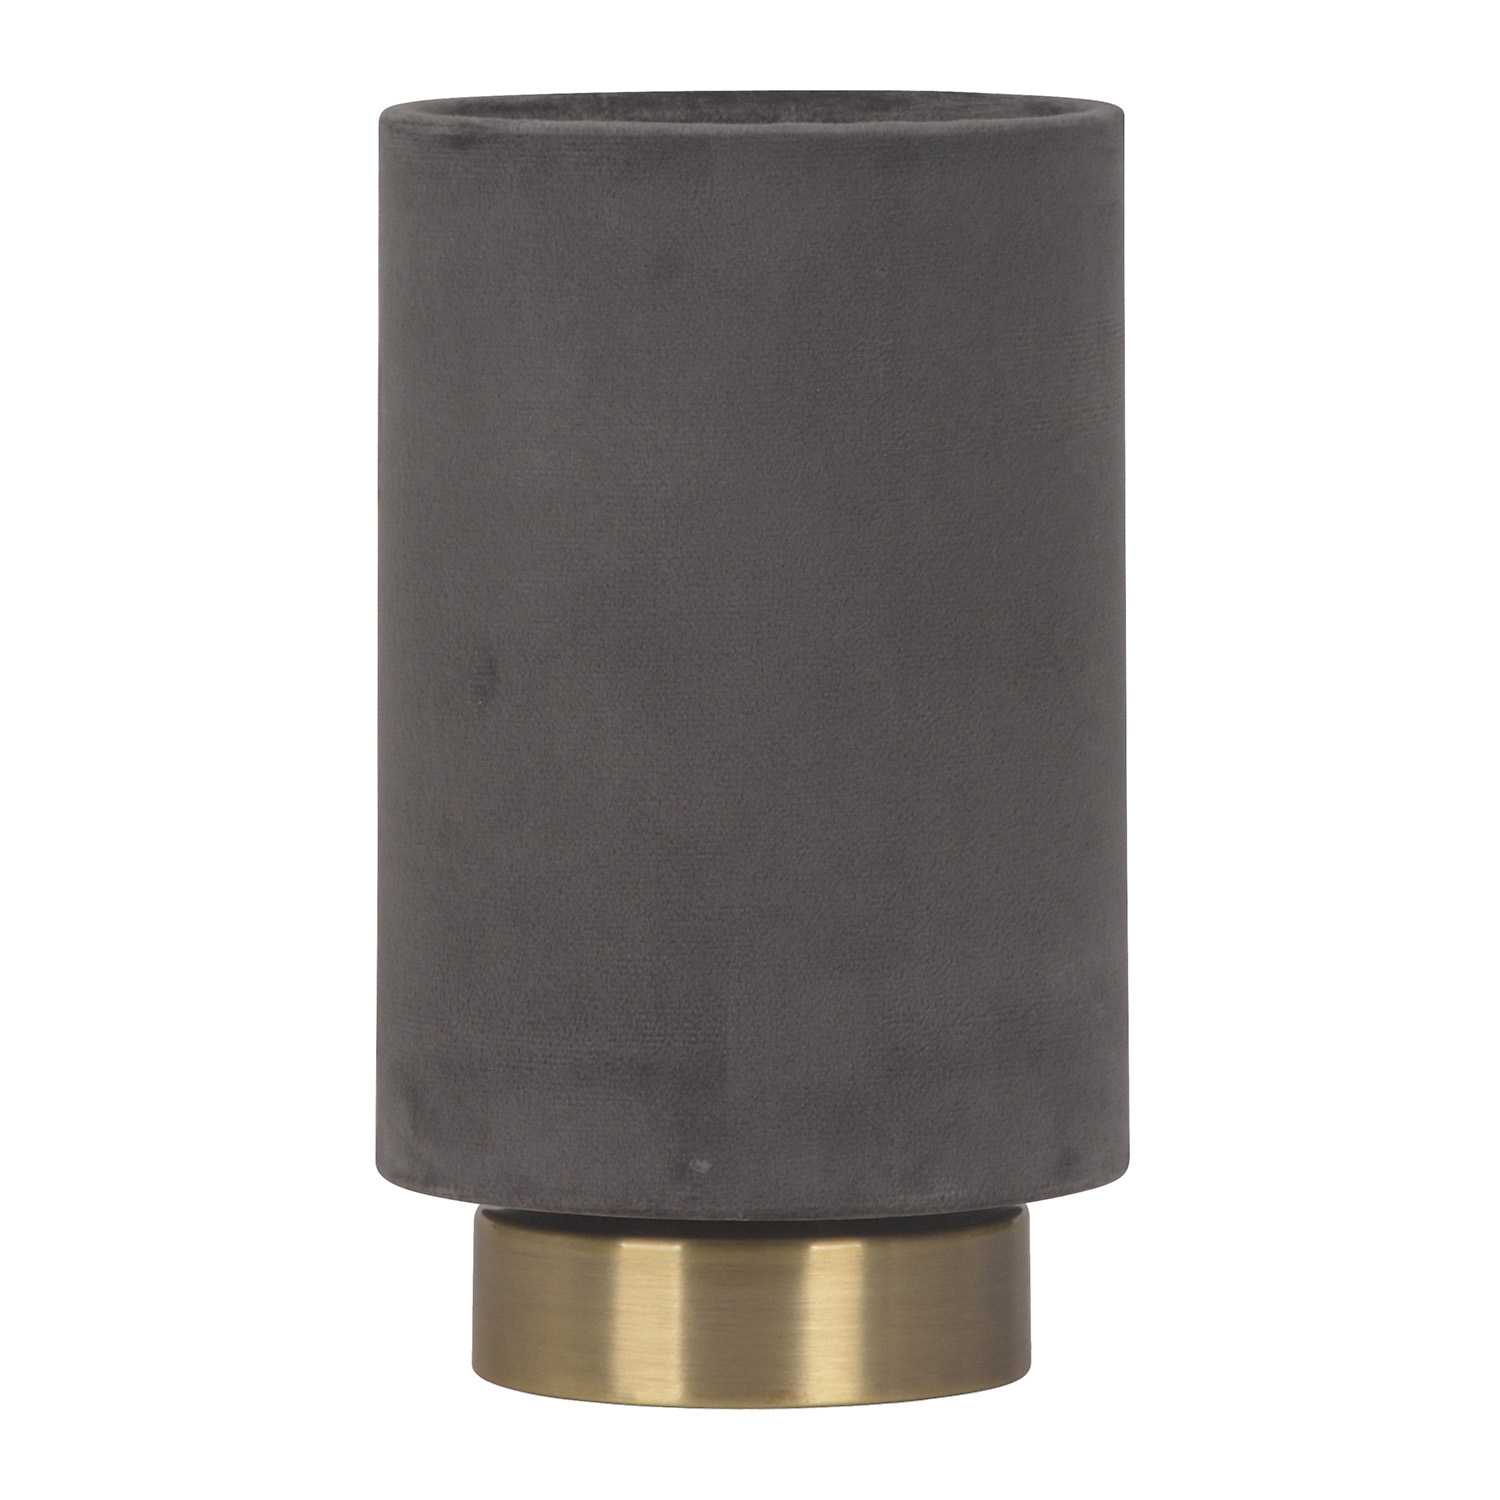 Sloane Table Lamp - Charcoal